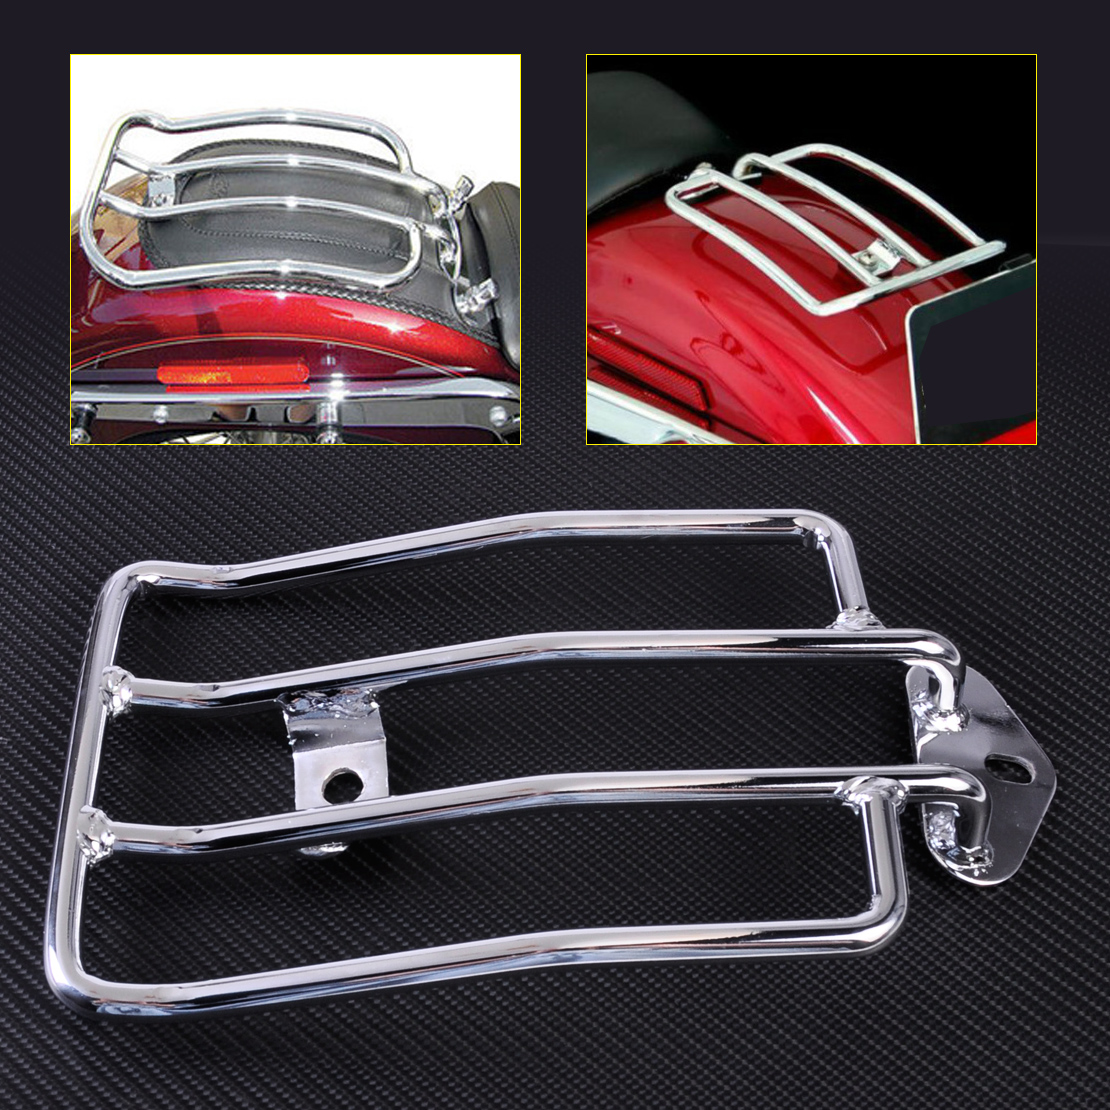 CITALL Silver Seat Luggage Shelf Carrier Support Rack for Harley Davidson Sportster 1200 883 with stock solo seat 2004-2011 2012 silver top roof rack rails luggage carrier bars for honda crv 2012 2013 2014 2015